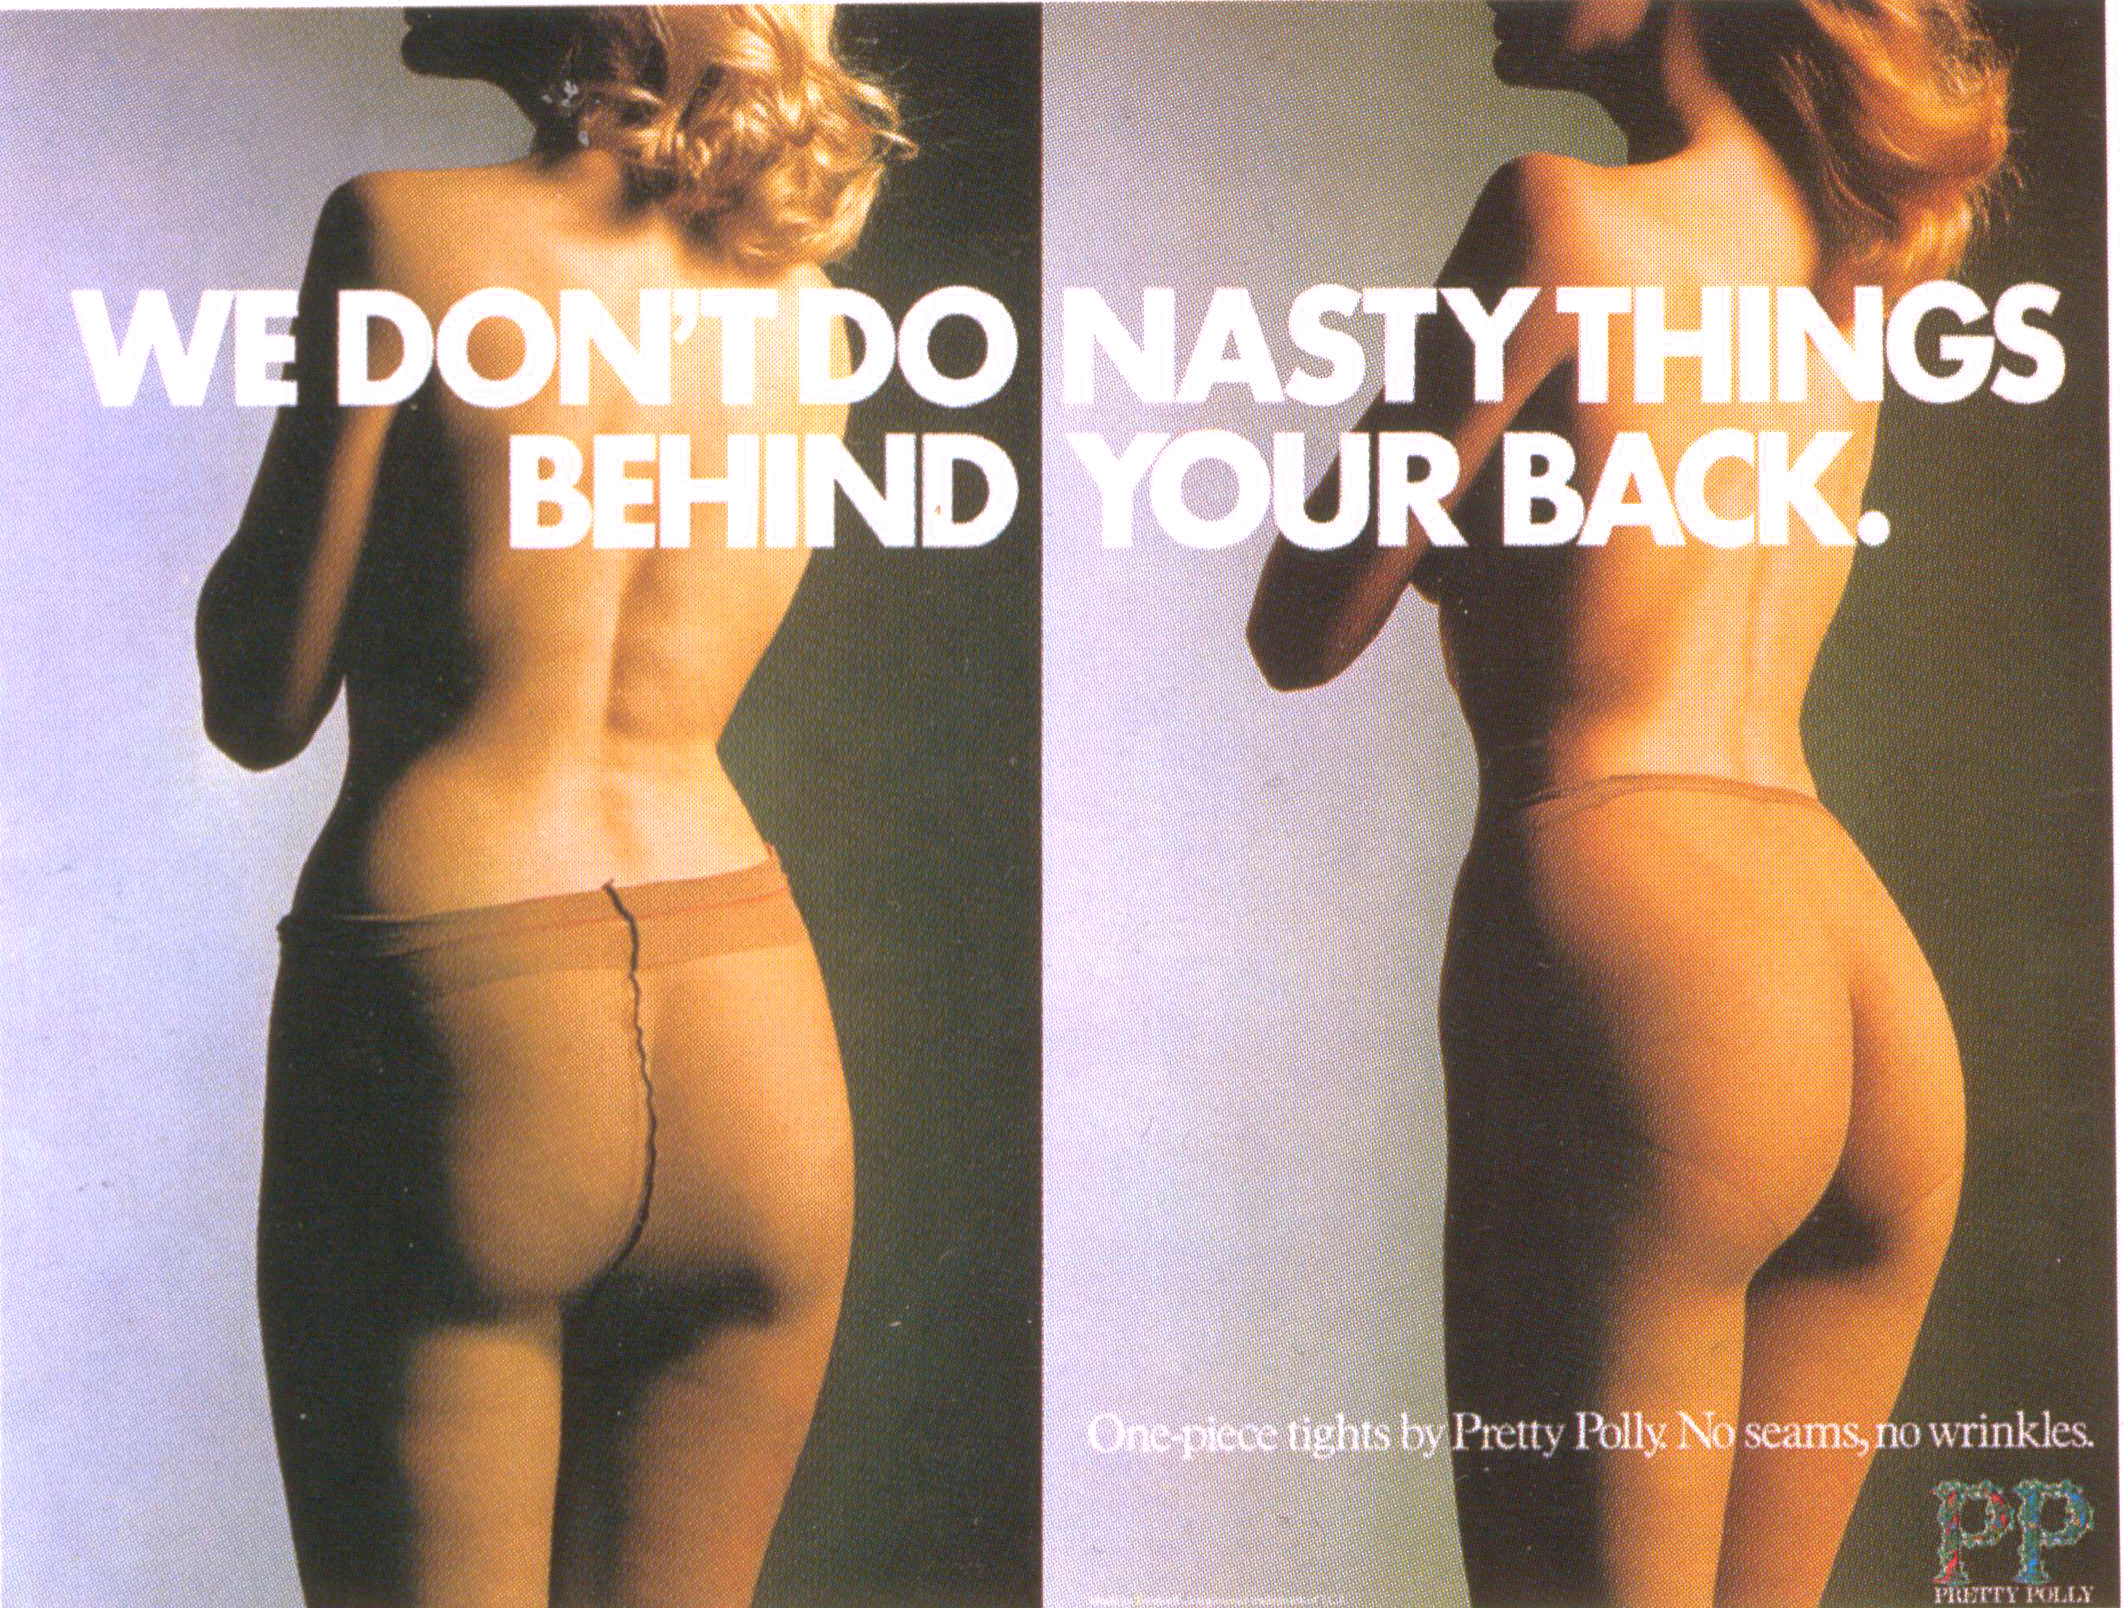 'We Don't' Pretty Polly, Paul Weiland, CDP